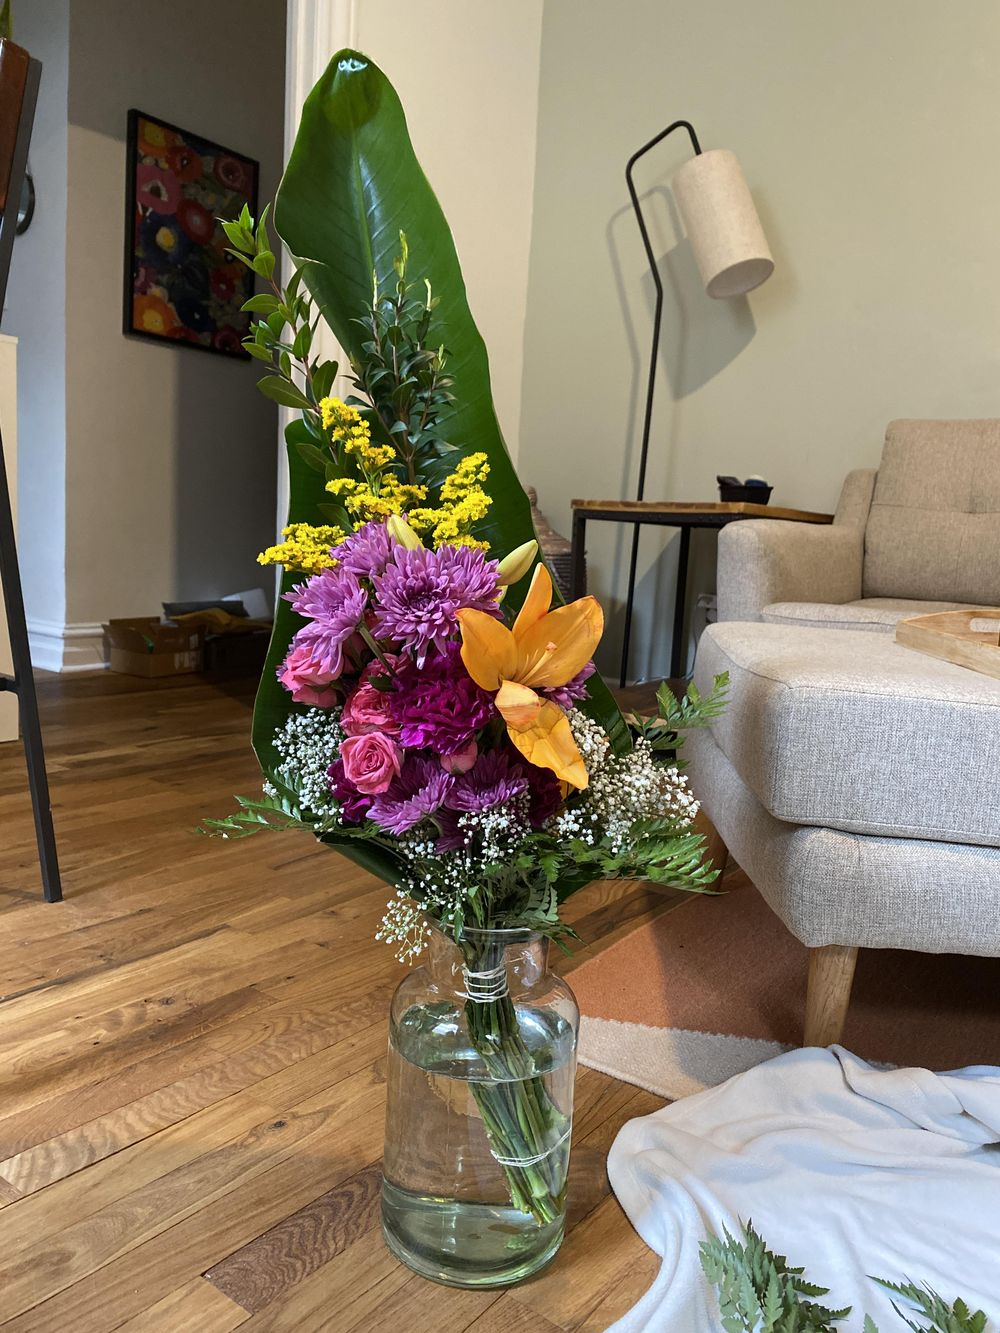 Giving Grocery Store Flowers a Makeover - image 2 - student project